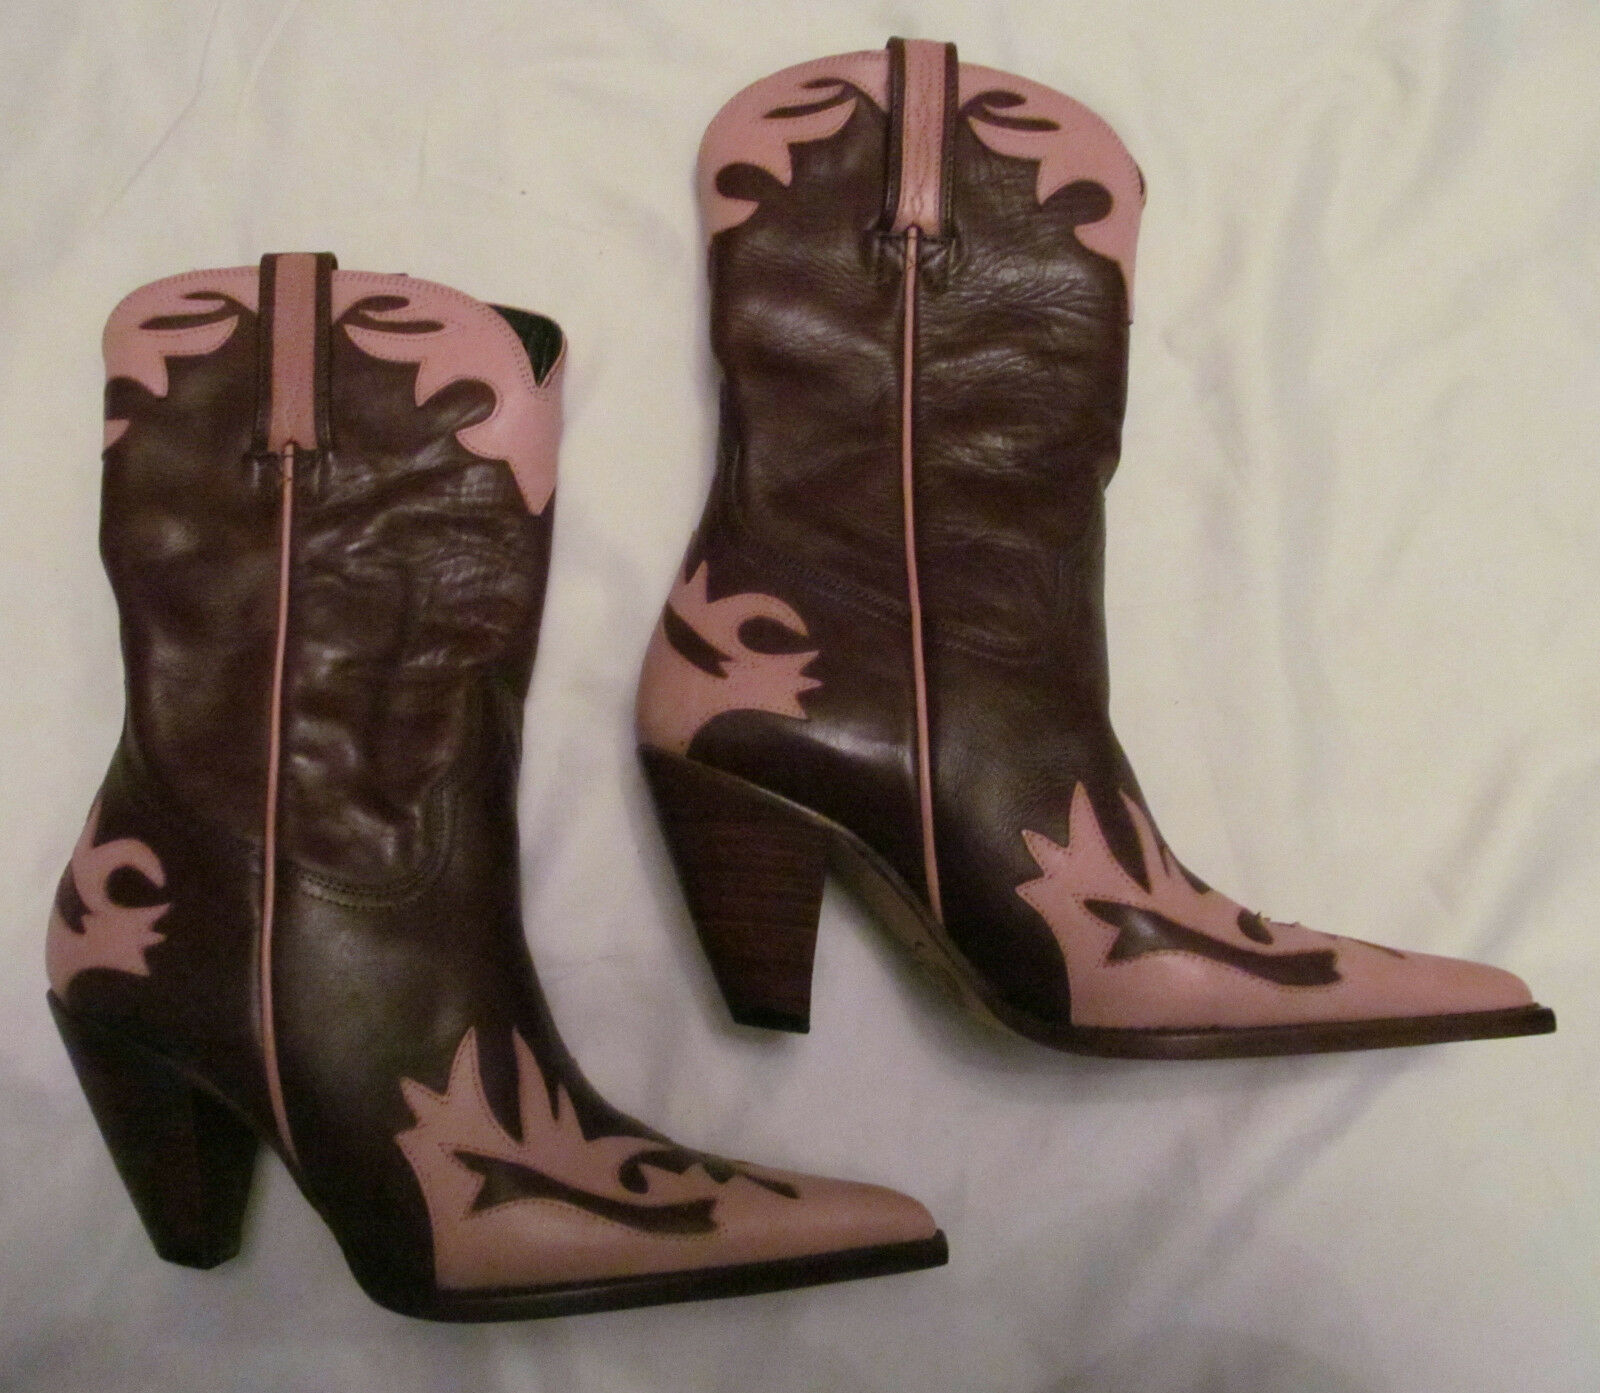 LUCCHESE CHARLIE 1 HORSE marron rose pointed toe heeled cowboy bottes 6.5 NEW